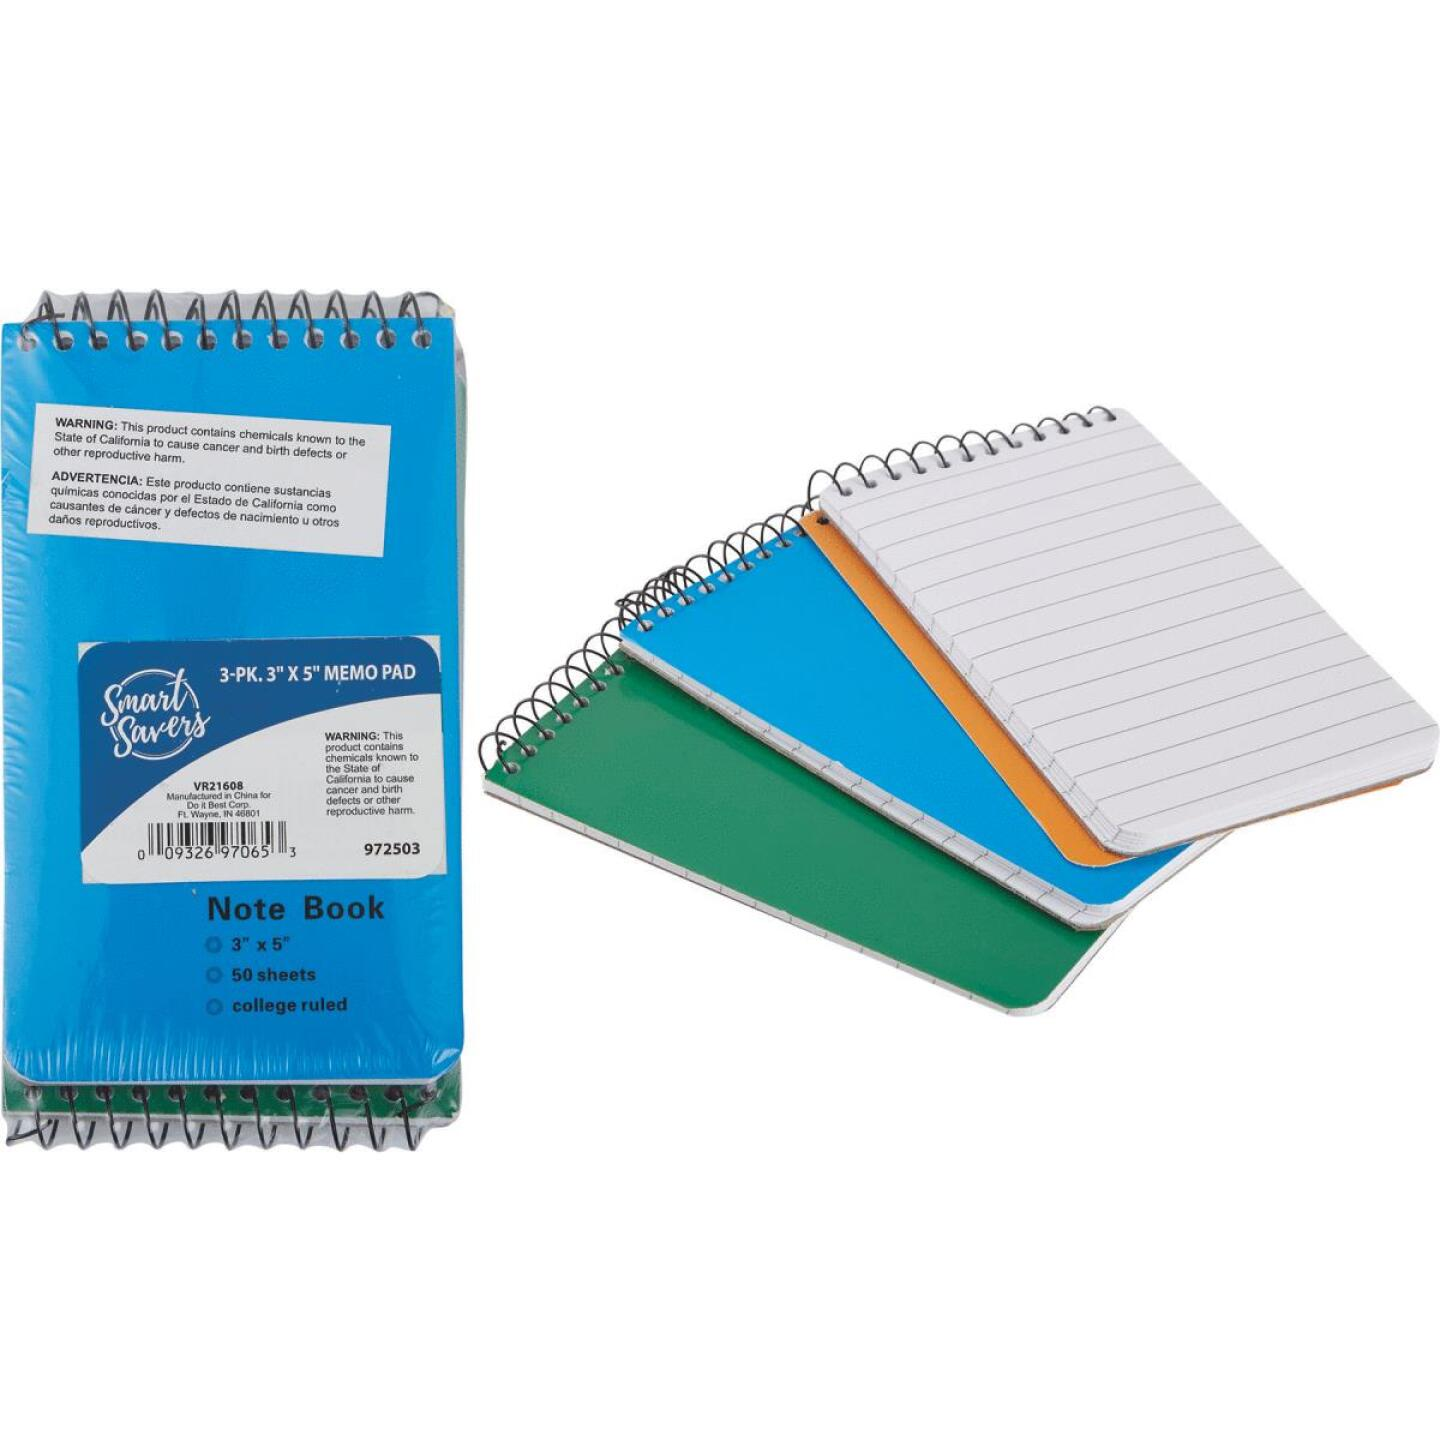 Smart Savers 3 In. x 5 In. White 50-Sheet Top Spiral Bound Memo Pad (3-Pack) Image 1